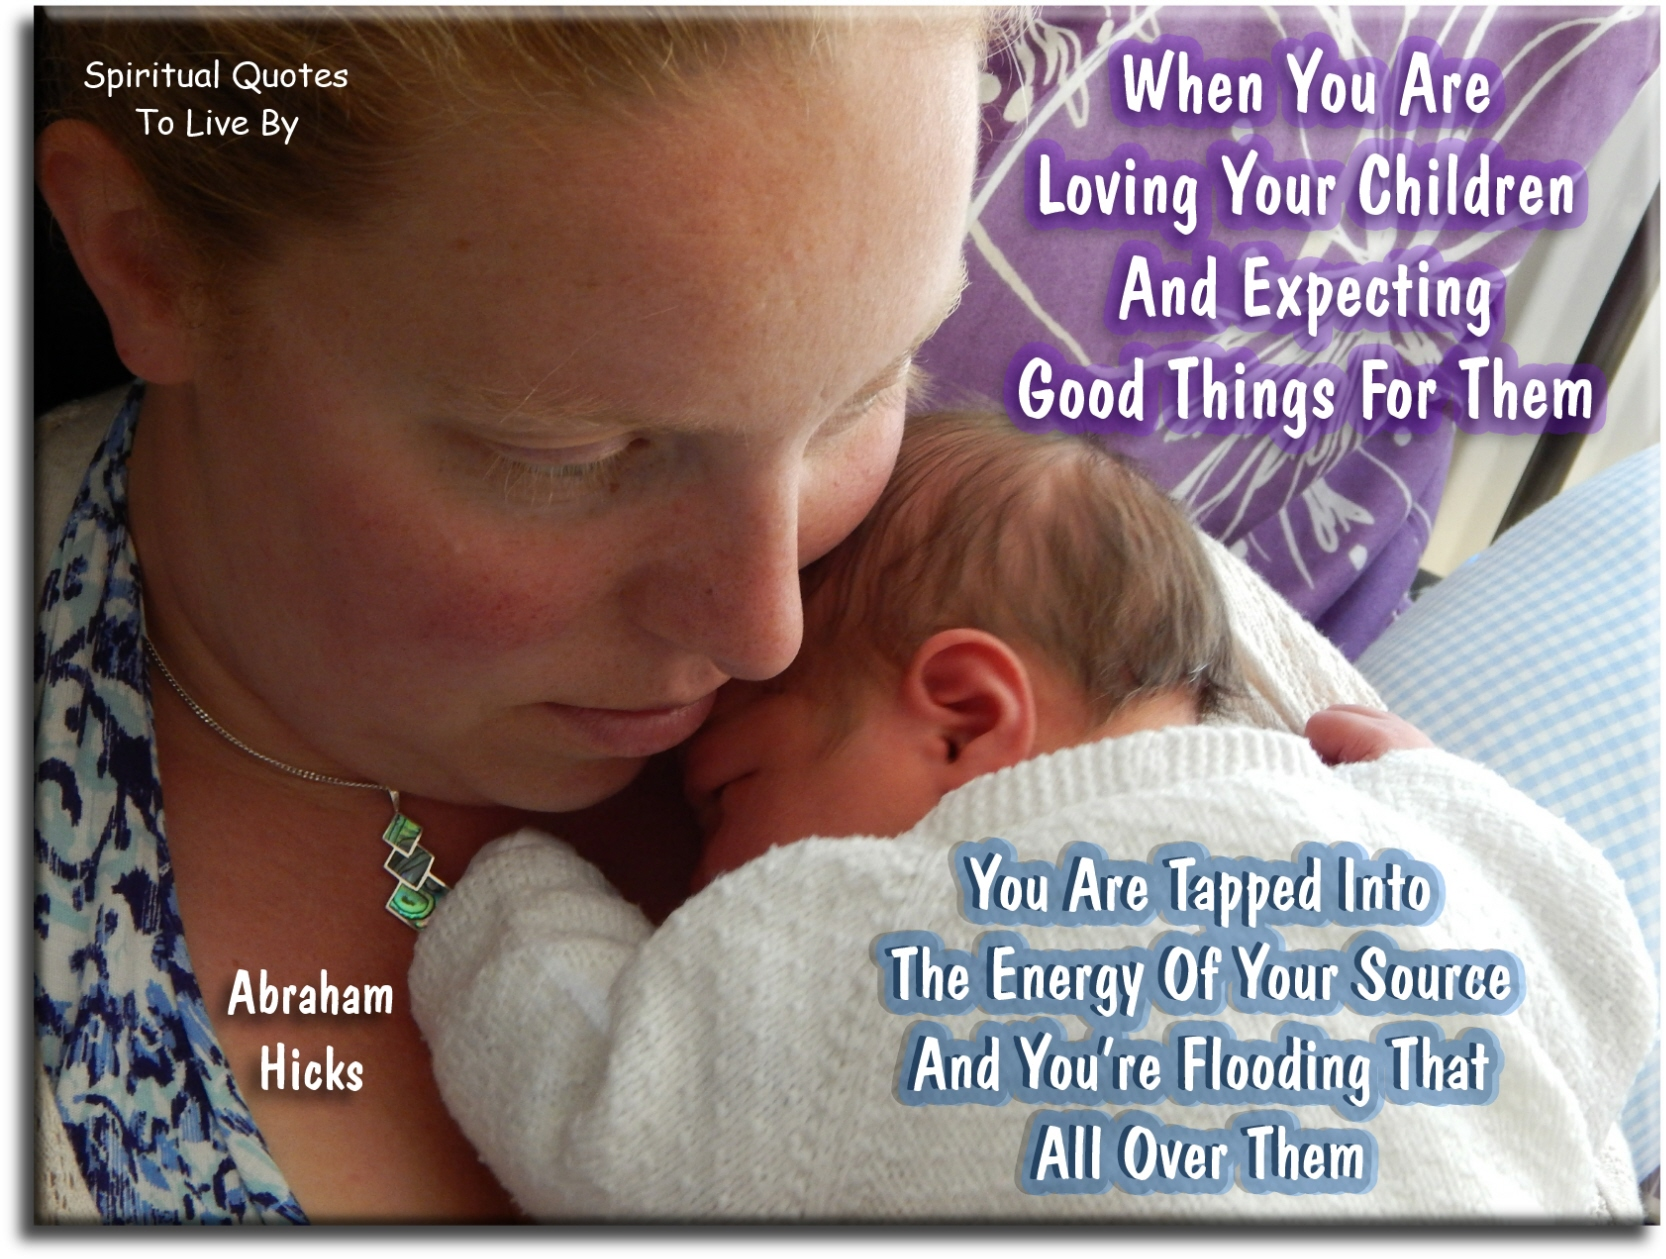 Abraham-Hicks quote: When you are loving your children and expecting good things for them, you are tapped into the Energy of your Source.. Spiritual Quotes To Live By